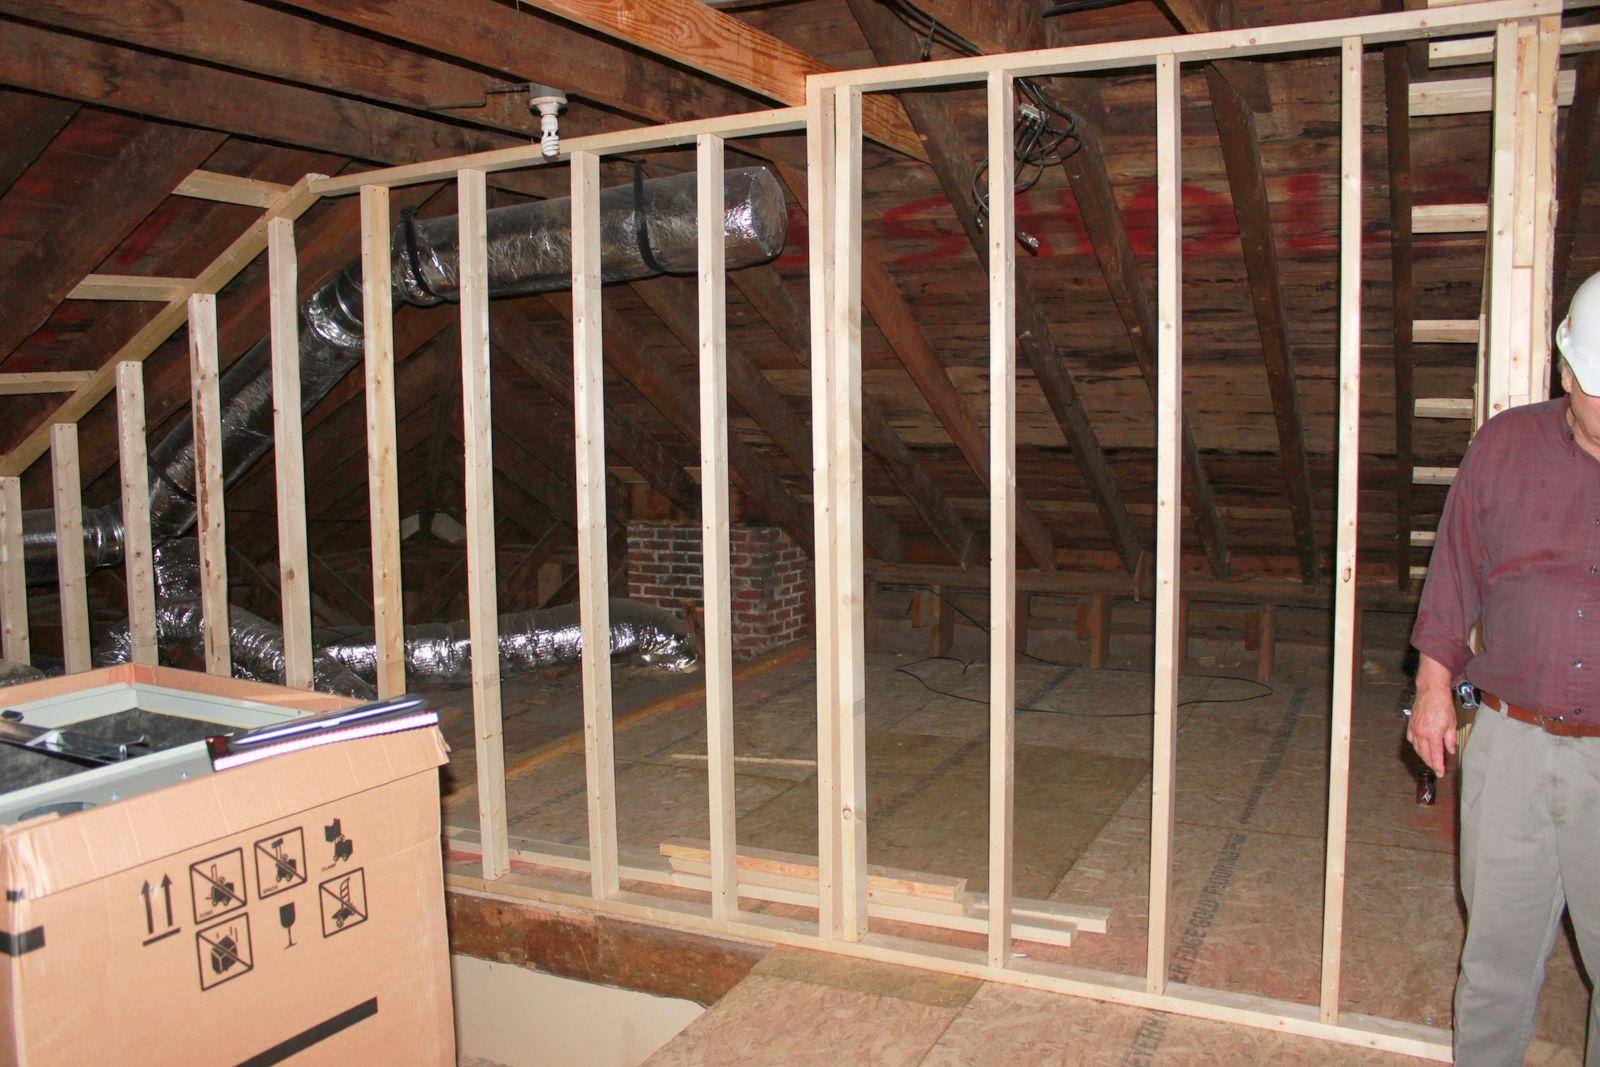 Pin by FEL on Wall framing Frames on wall, Attic rooms